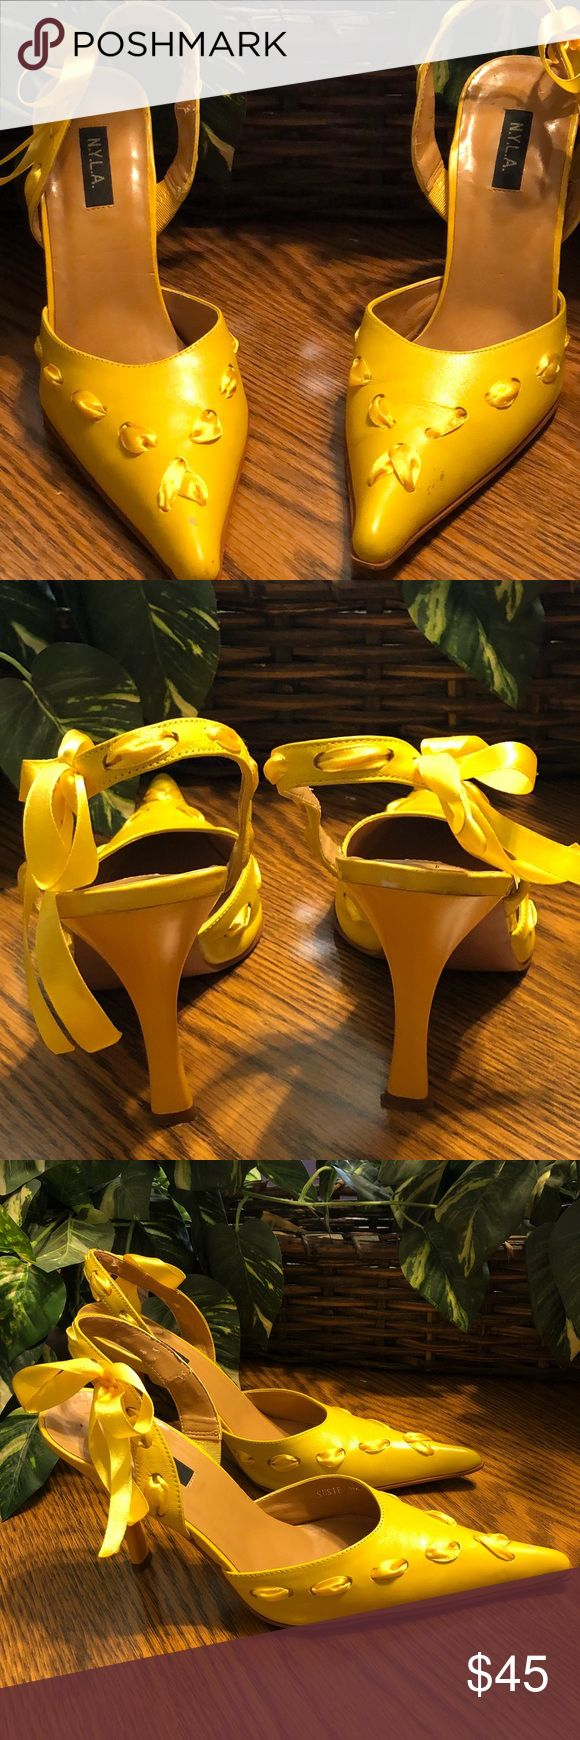 N.Y.L.A. Yellow Threaded Ribbon Shoes, Size 9 These are a lovely pair of yellow N.Y.L.A. Brand ladies heels. These beauties have yellow ribbon interwoven through out the shoe, ending with a beautiful ribbon on the side of the shoe. They have a three-inch heel and a back ankle strap design. This is a US size 9 shoe.   ✨There are two very small scuff marks (one on each shoe). A photo has been taken up close and far away to show how the mark looks. Please check our photos. ✨ N.Y.L.A. Shoes…